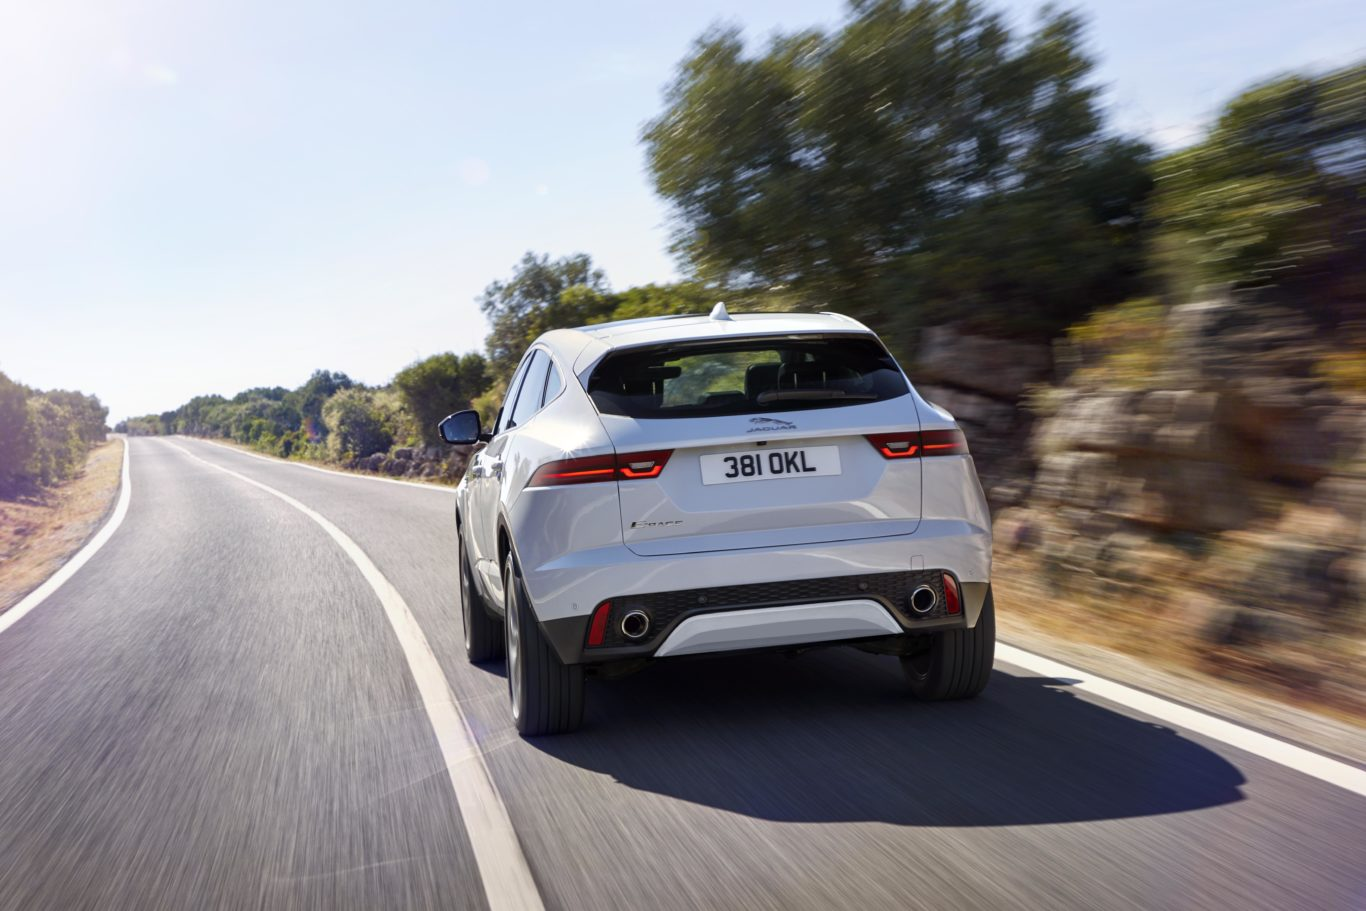 The rear-end styling of the E-Pace has been designed to reflect that of the F-Type sports car